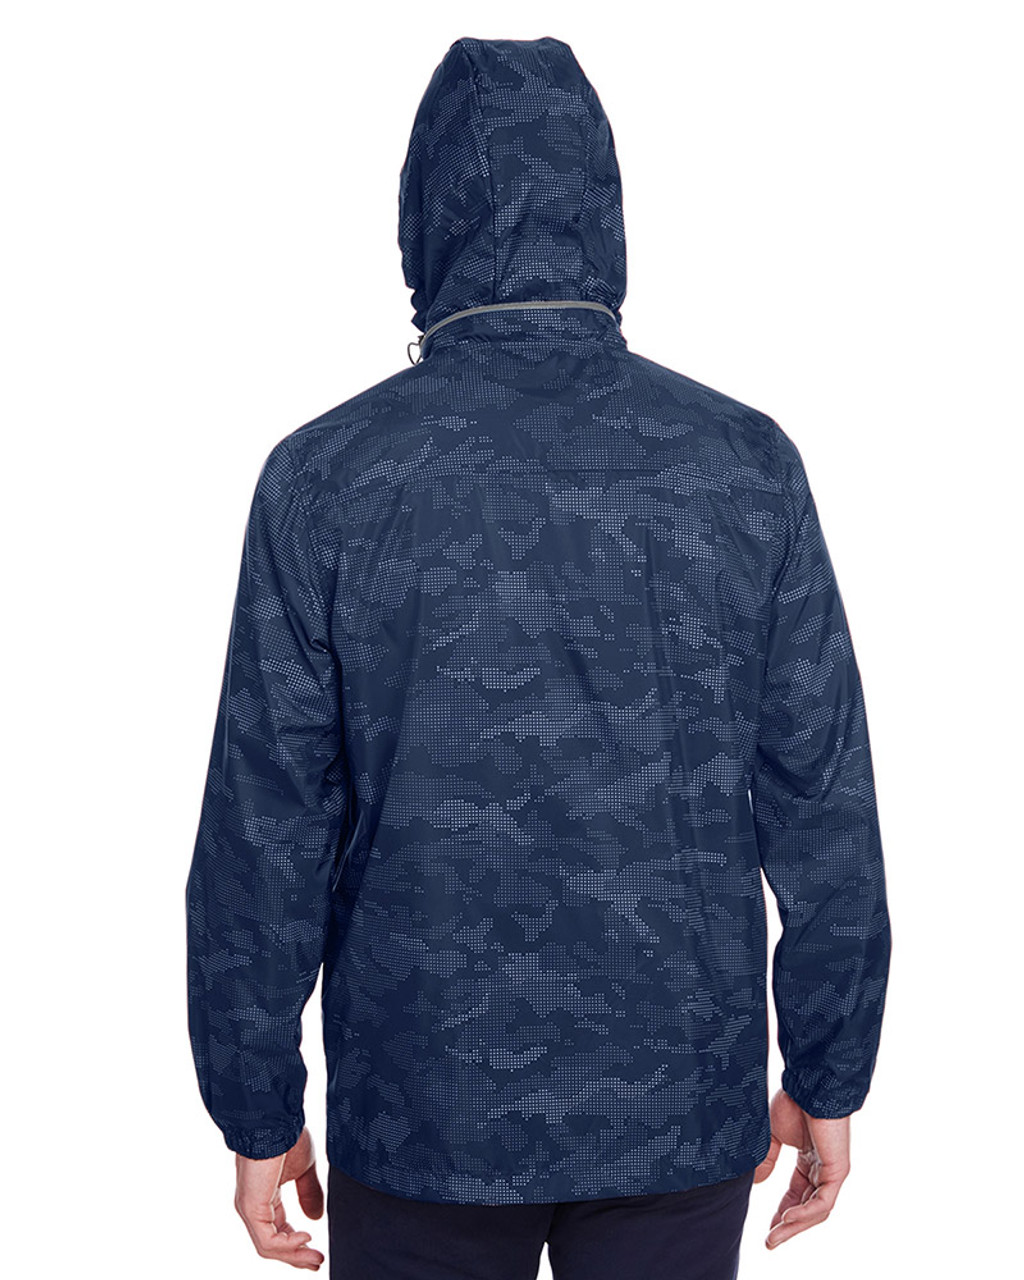 Classic Navy/Carbon - back, NE711 North End Men's Rotate Reflective Jacket   Blankclothing.ca